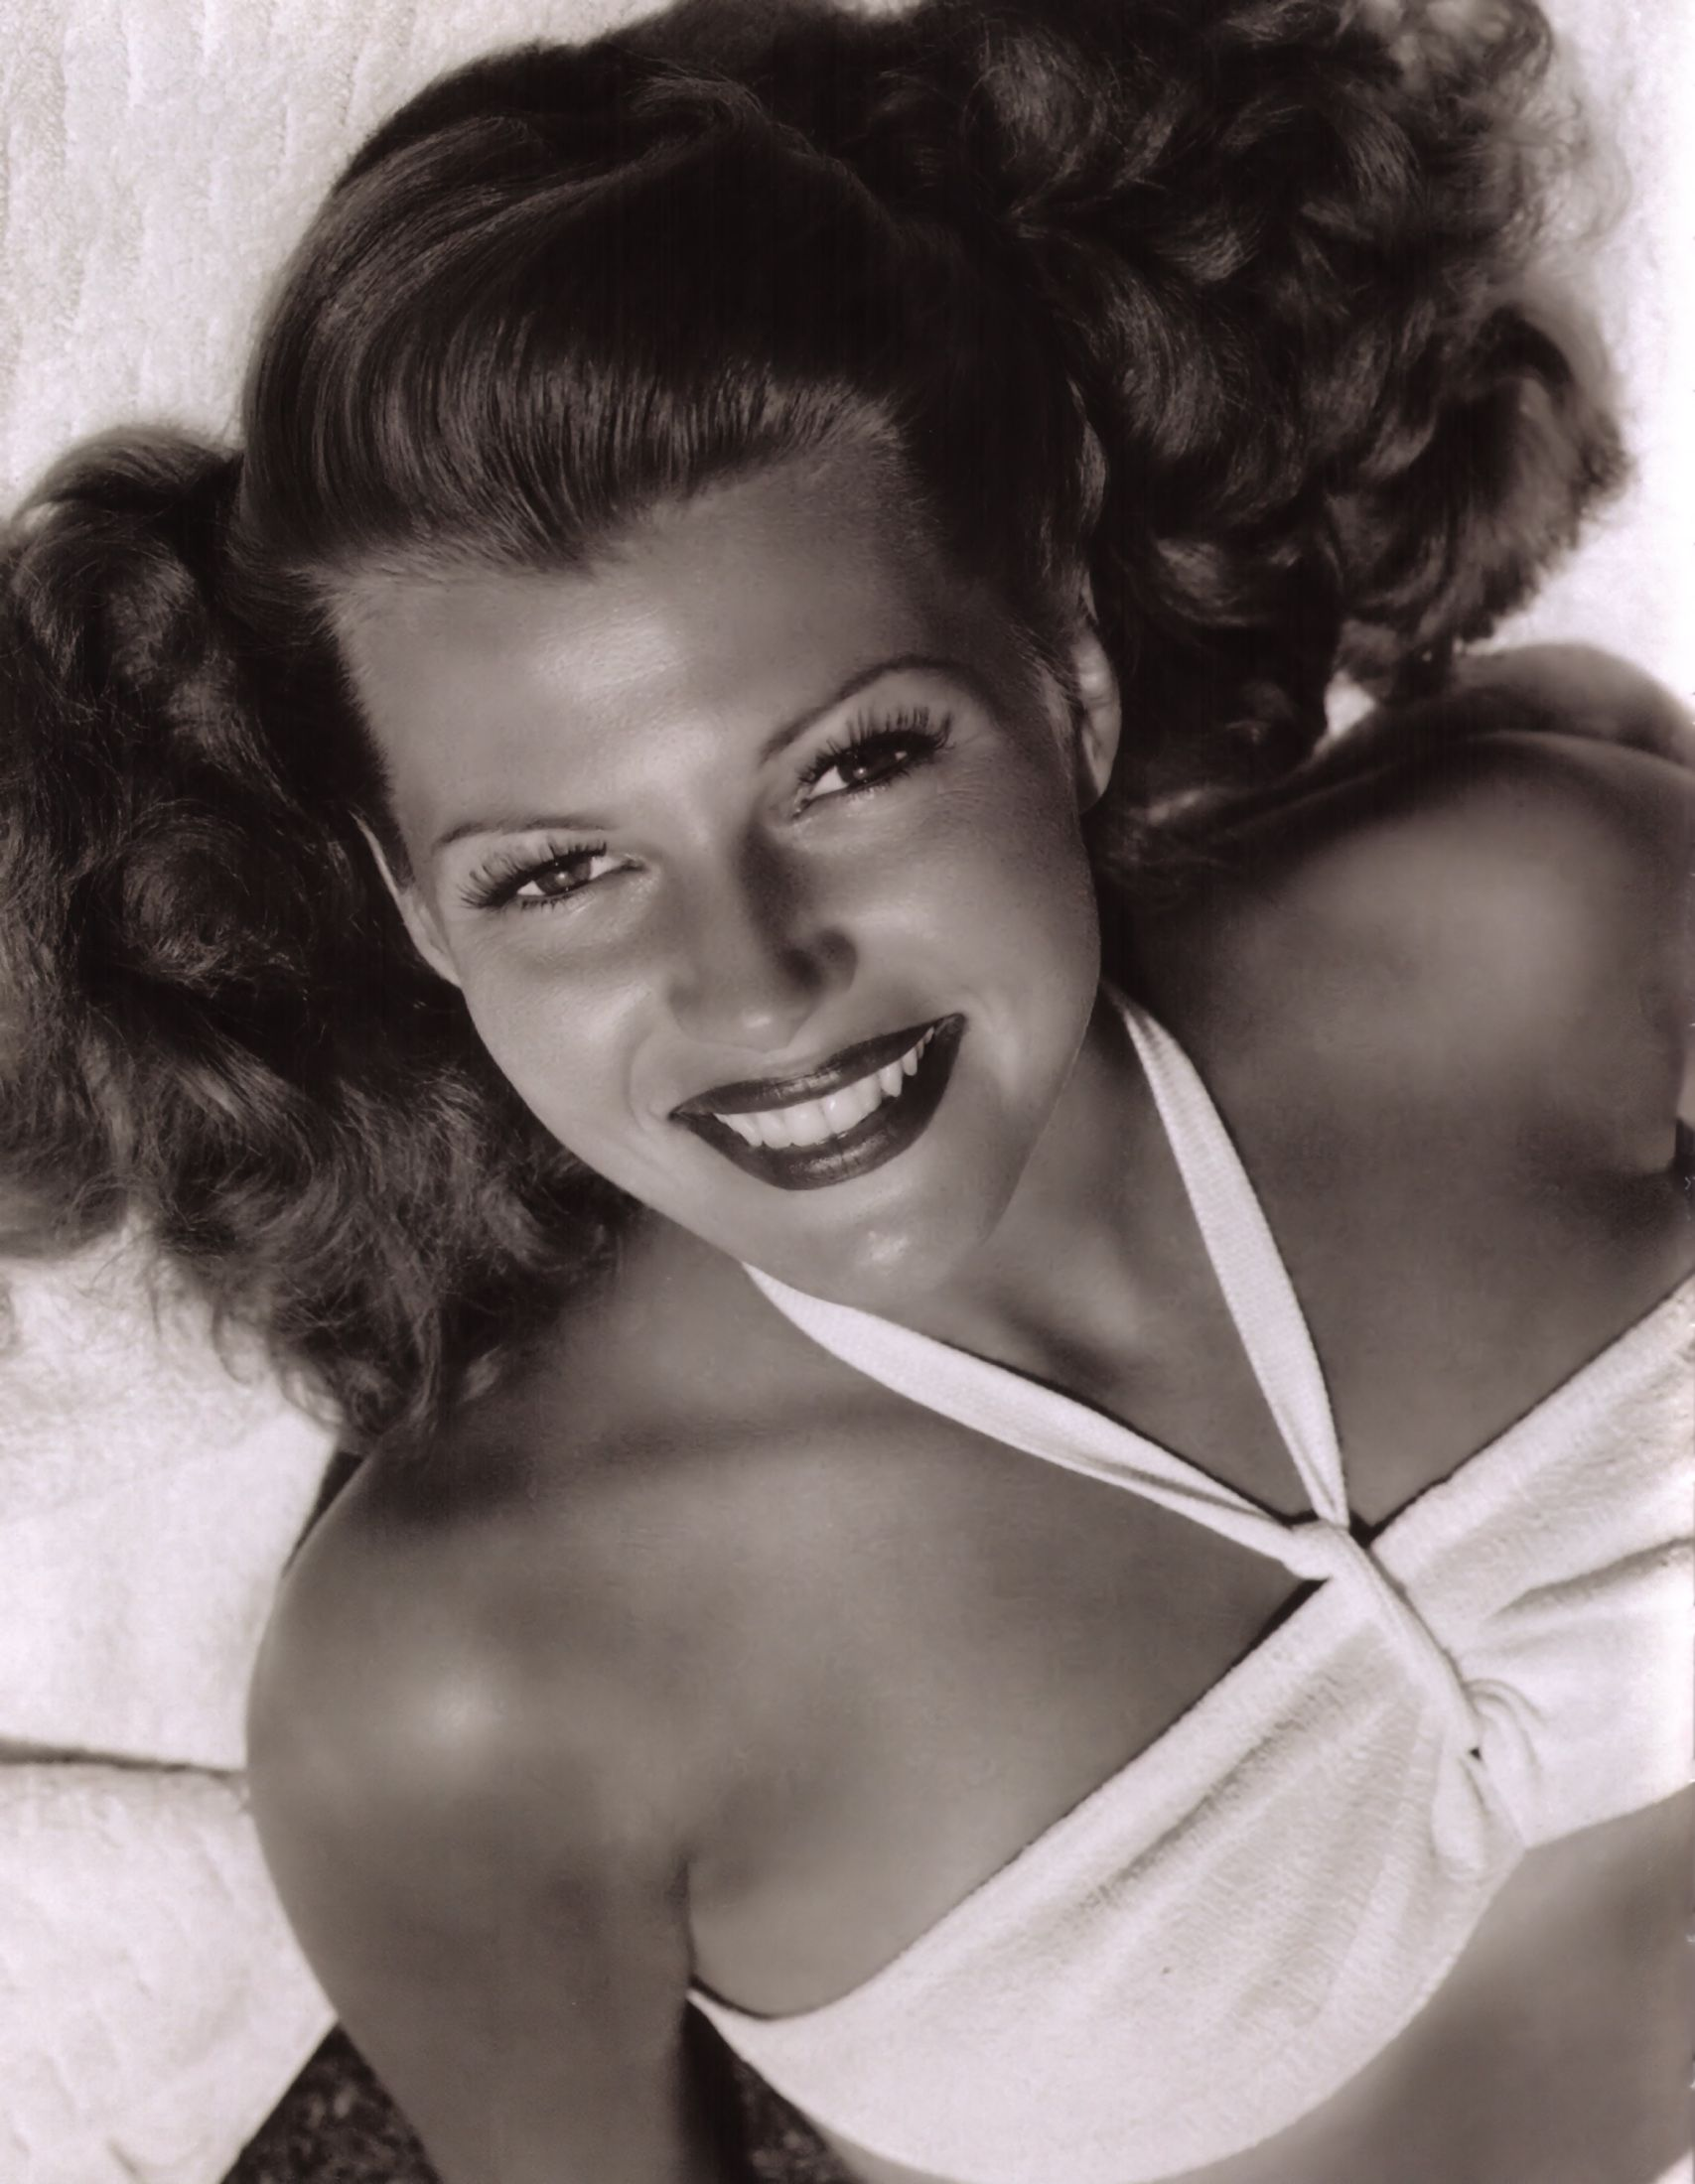 Rita Hayworth #Hollywood #iconic #actors #actress #greats #hollywoodicons